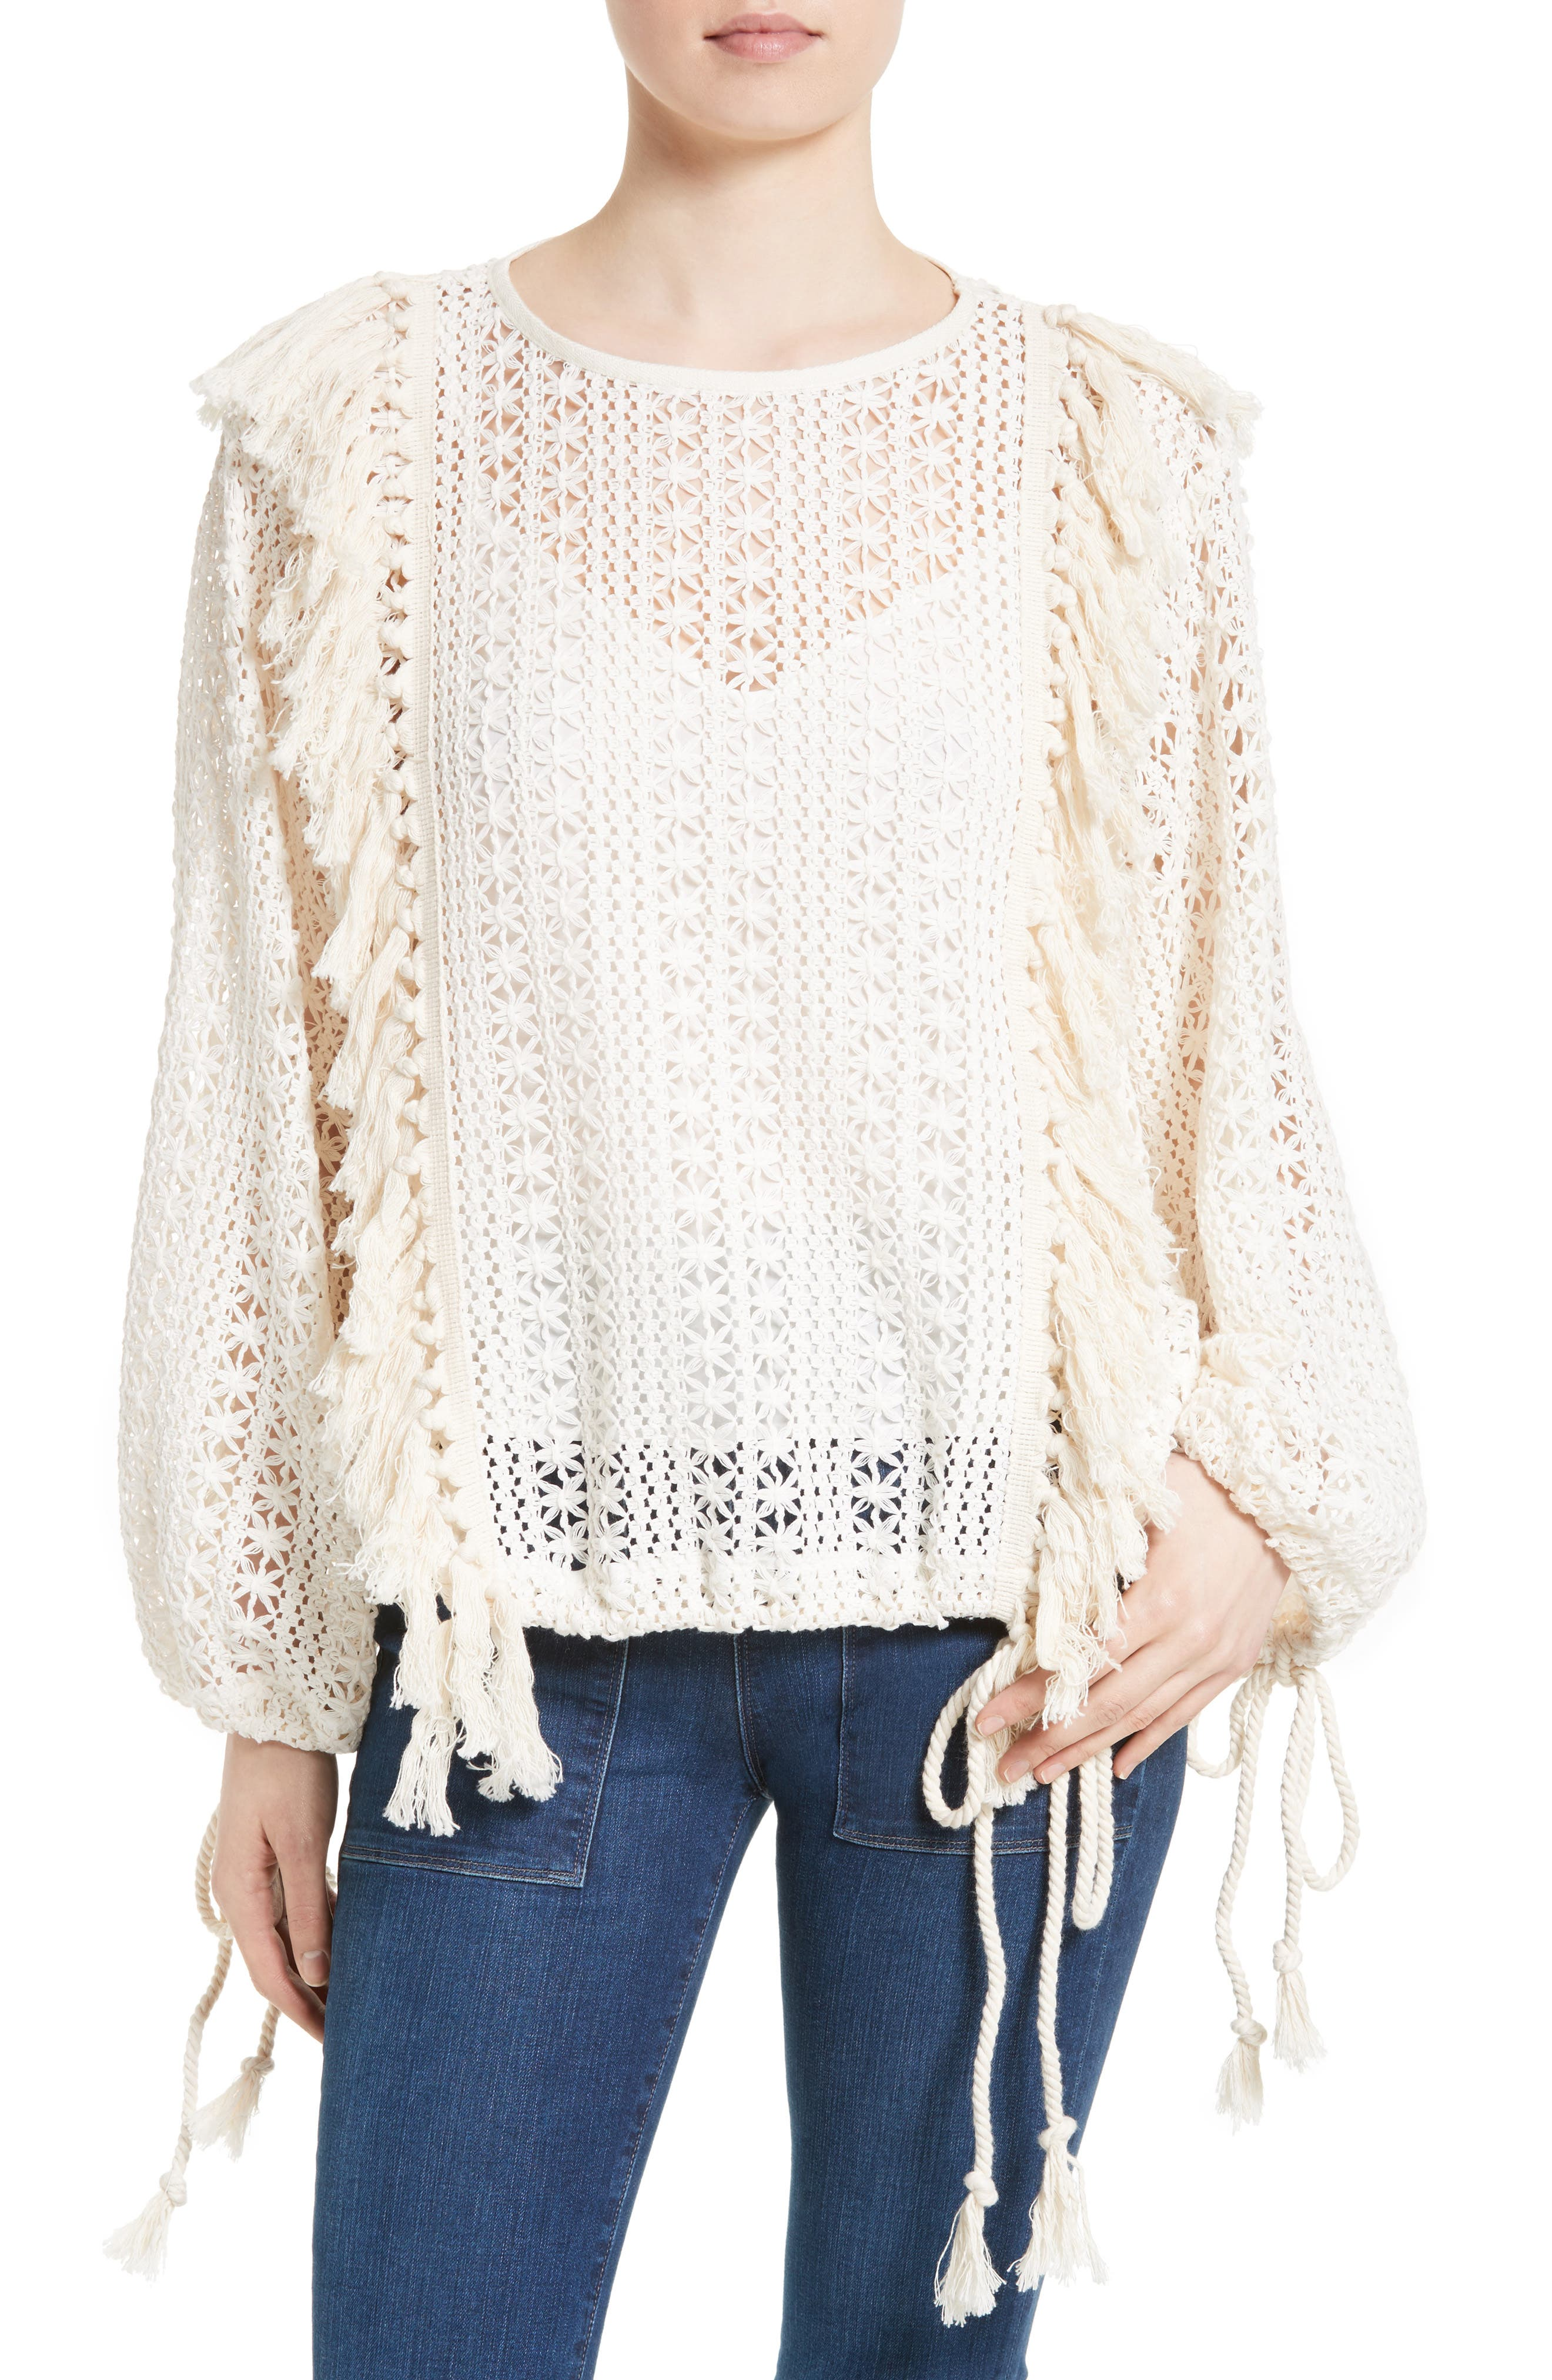 SEE BY CHLOÉ Fishnet Lace & Fringe Top